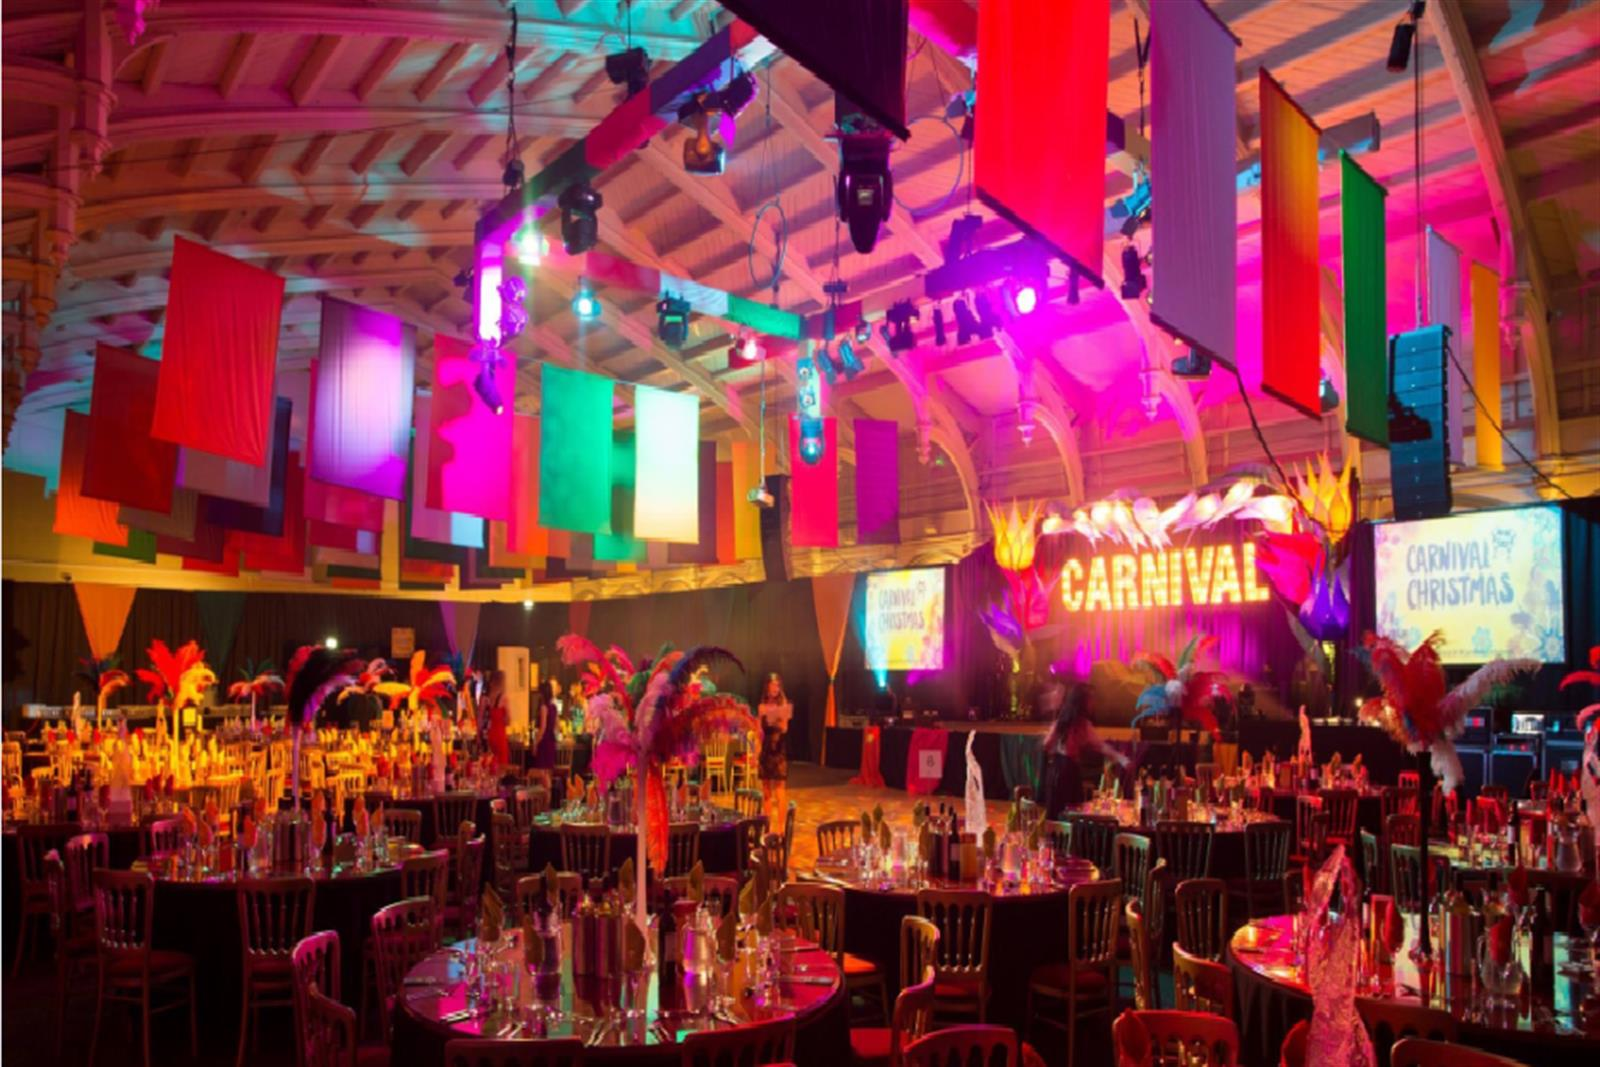 Partyvenuesuk Co Uk: Beautiful Christmas Party Venues